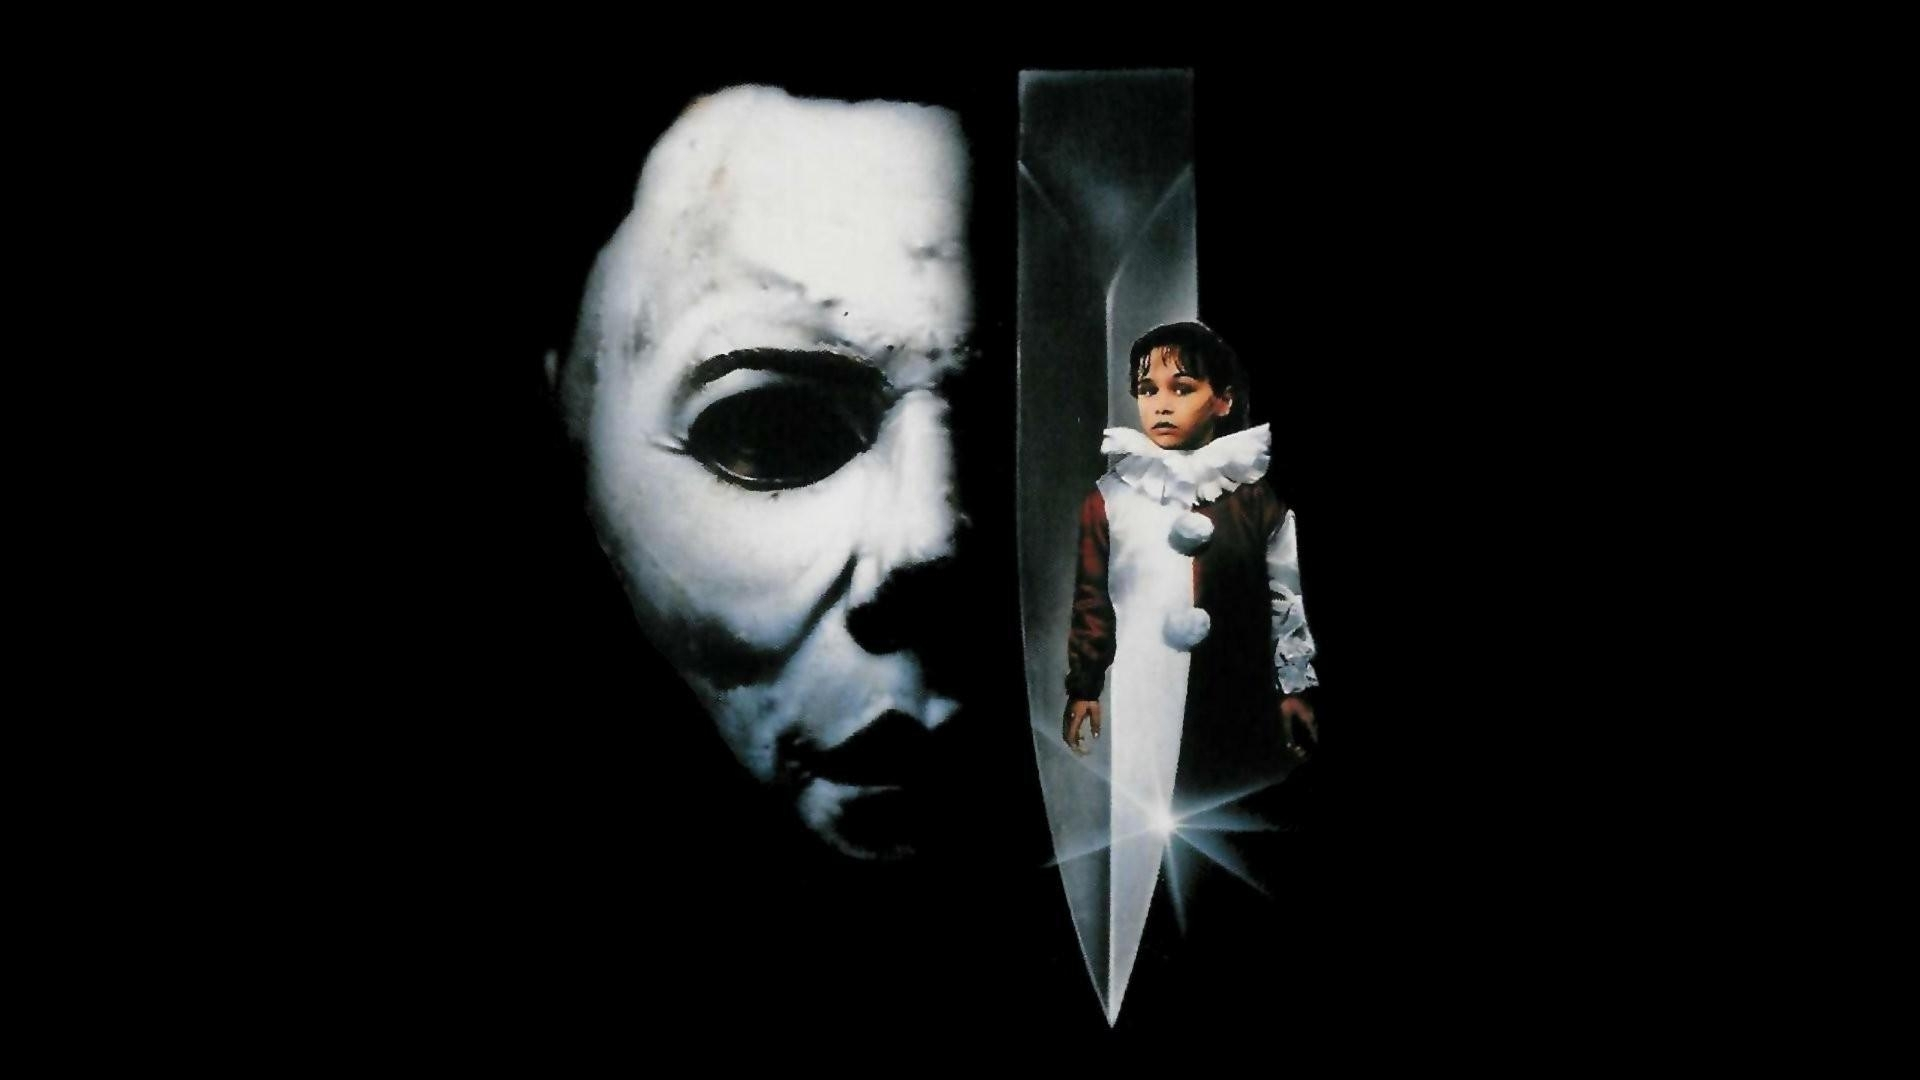 10 New Michael Myers Wallpaper For Android FULL HD 1080p ...